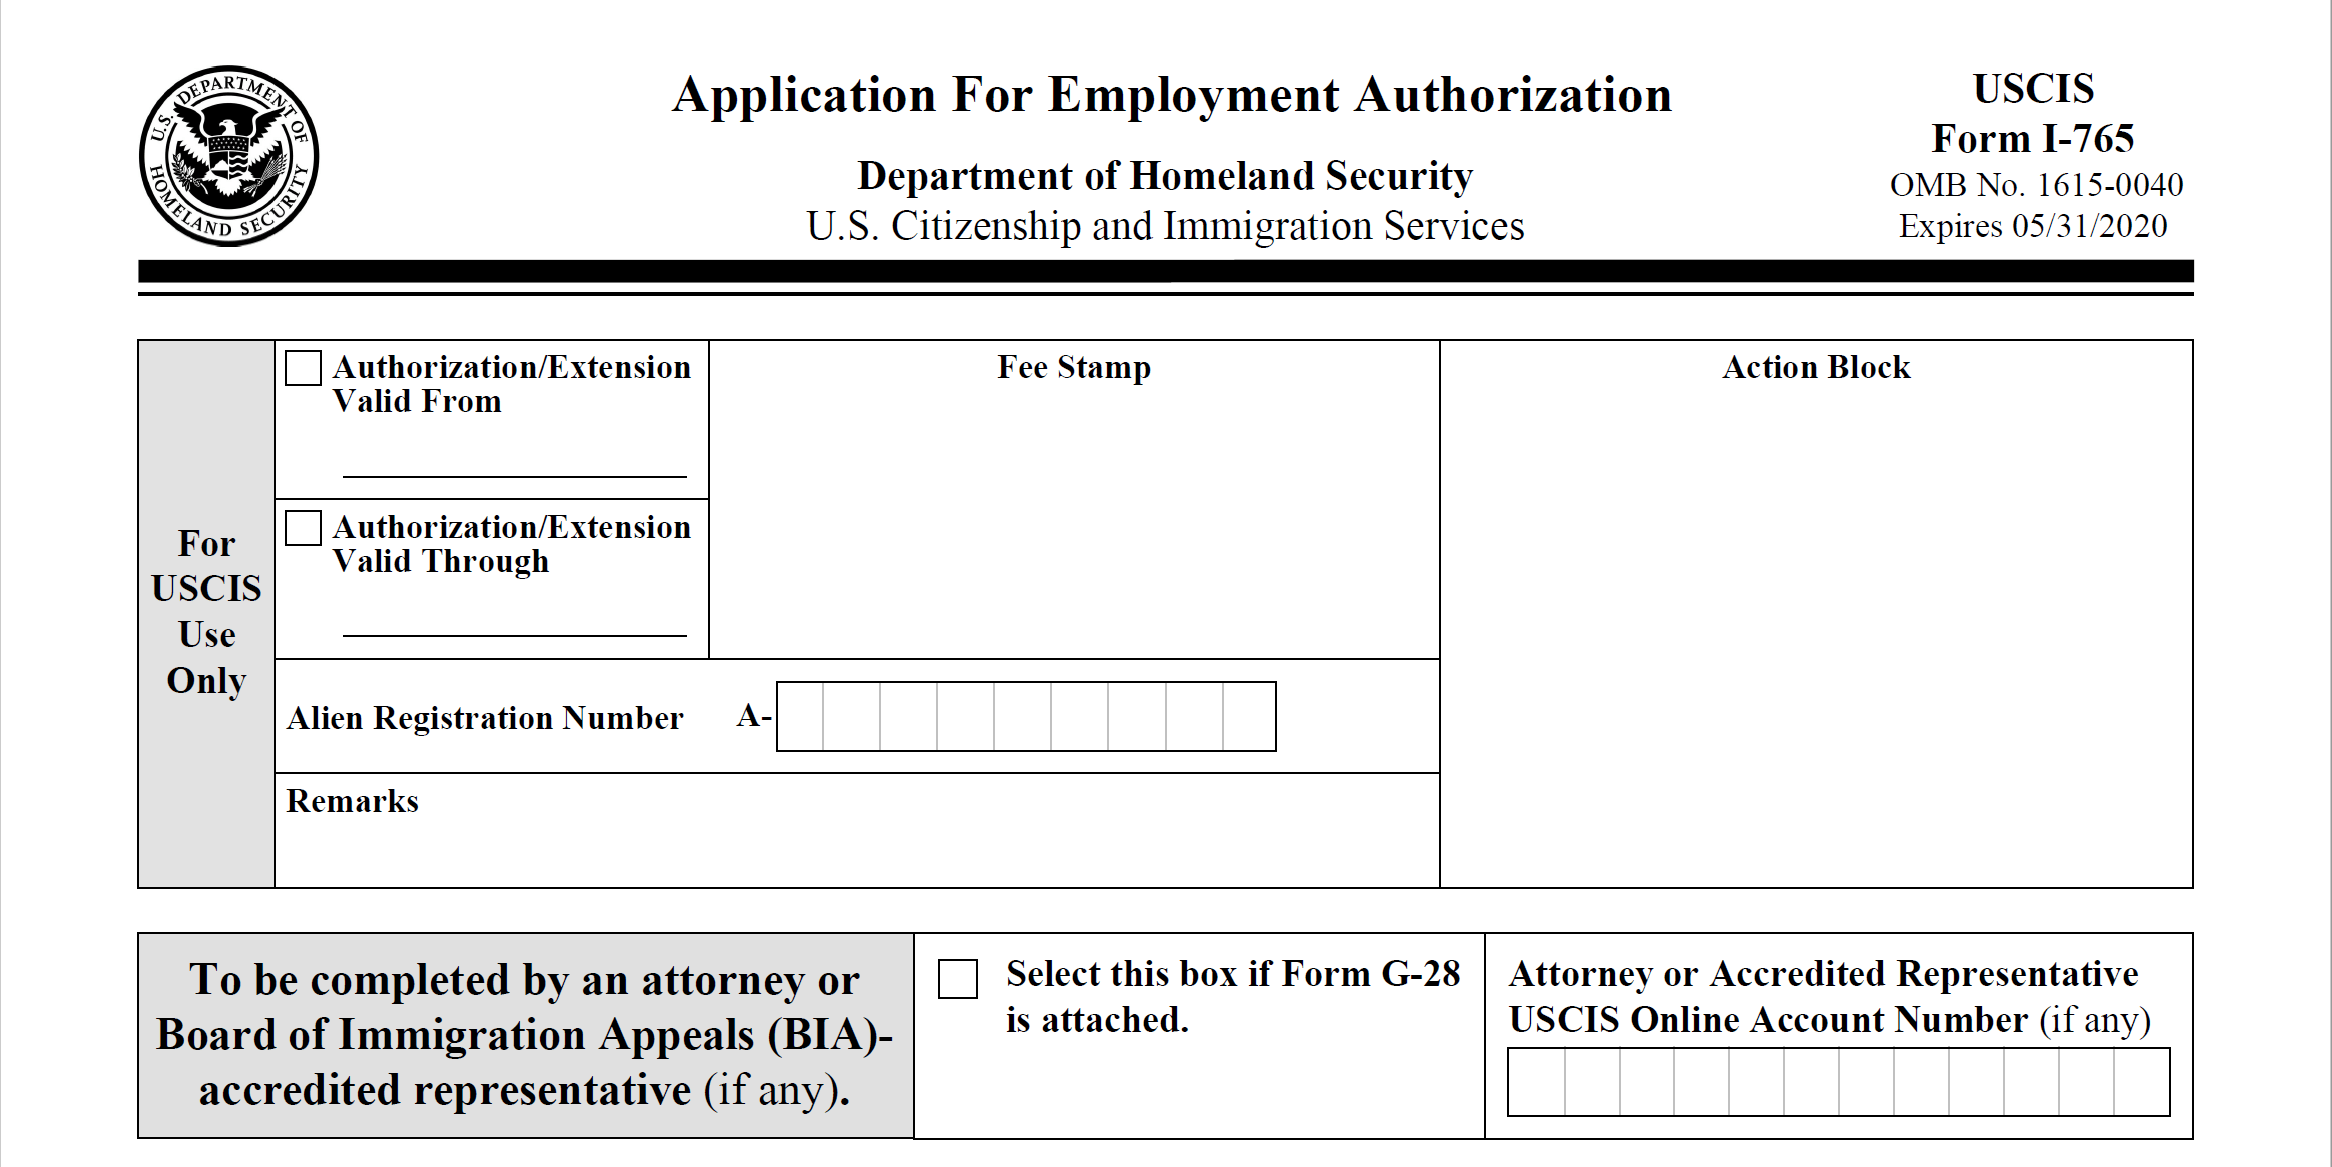 Form I-765: Application for Employment Authorization